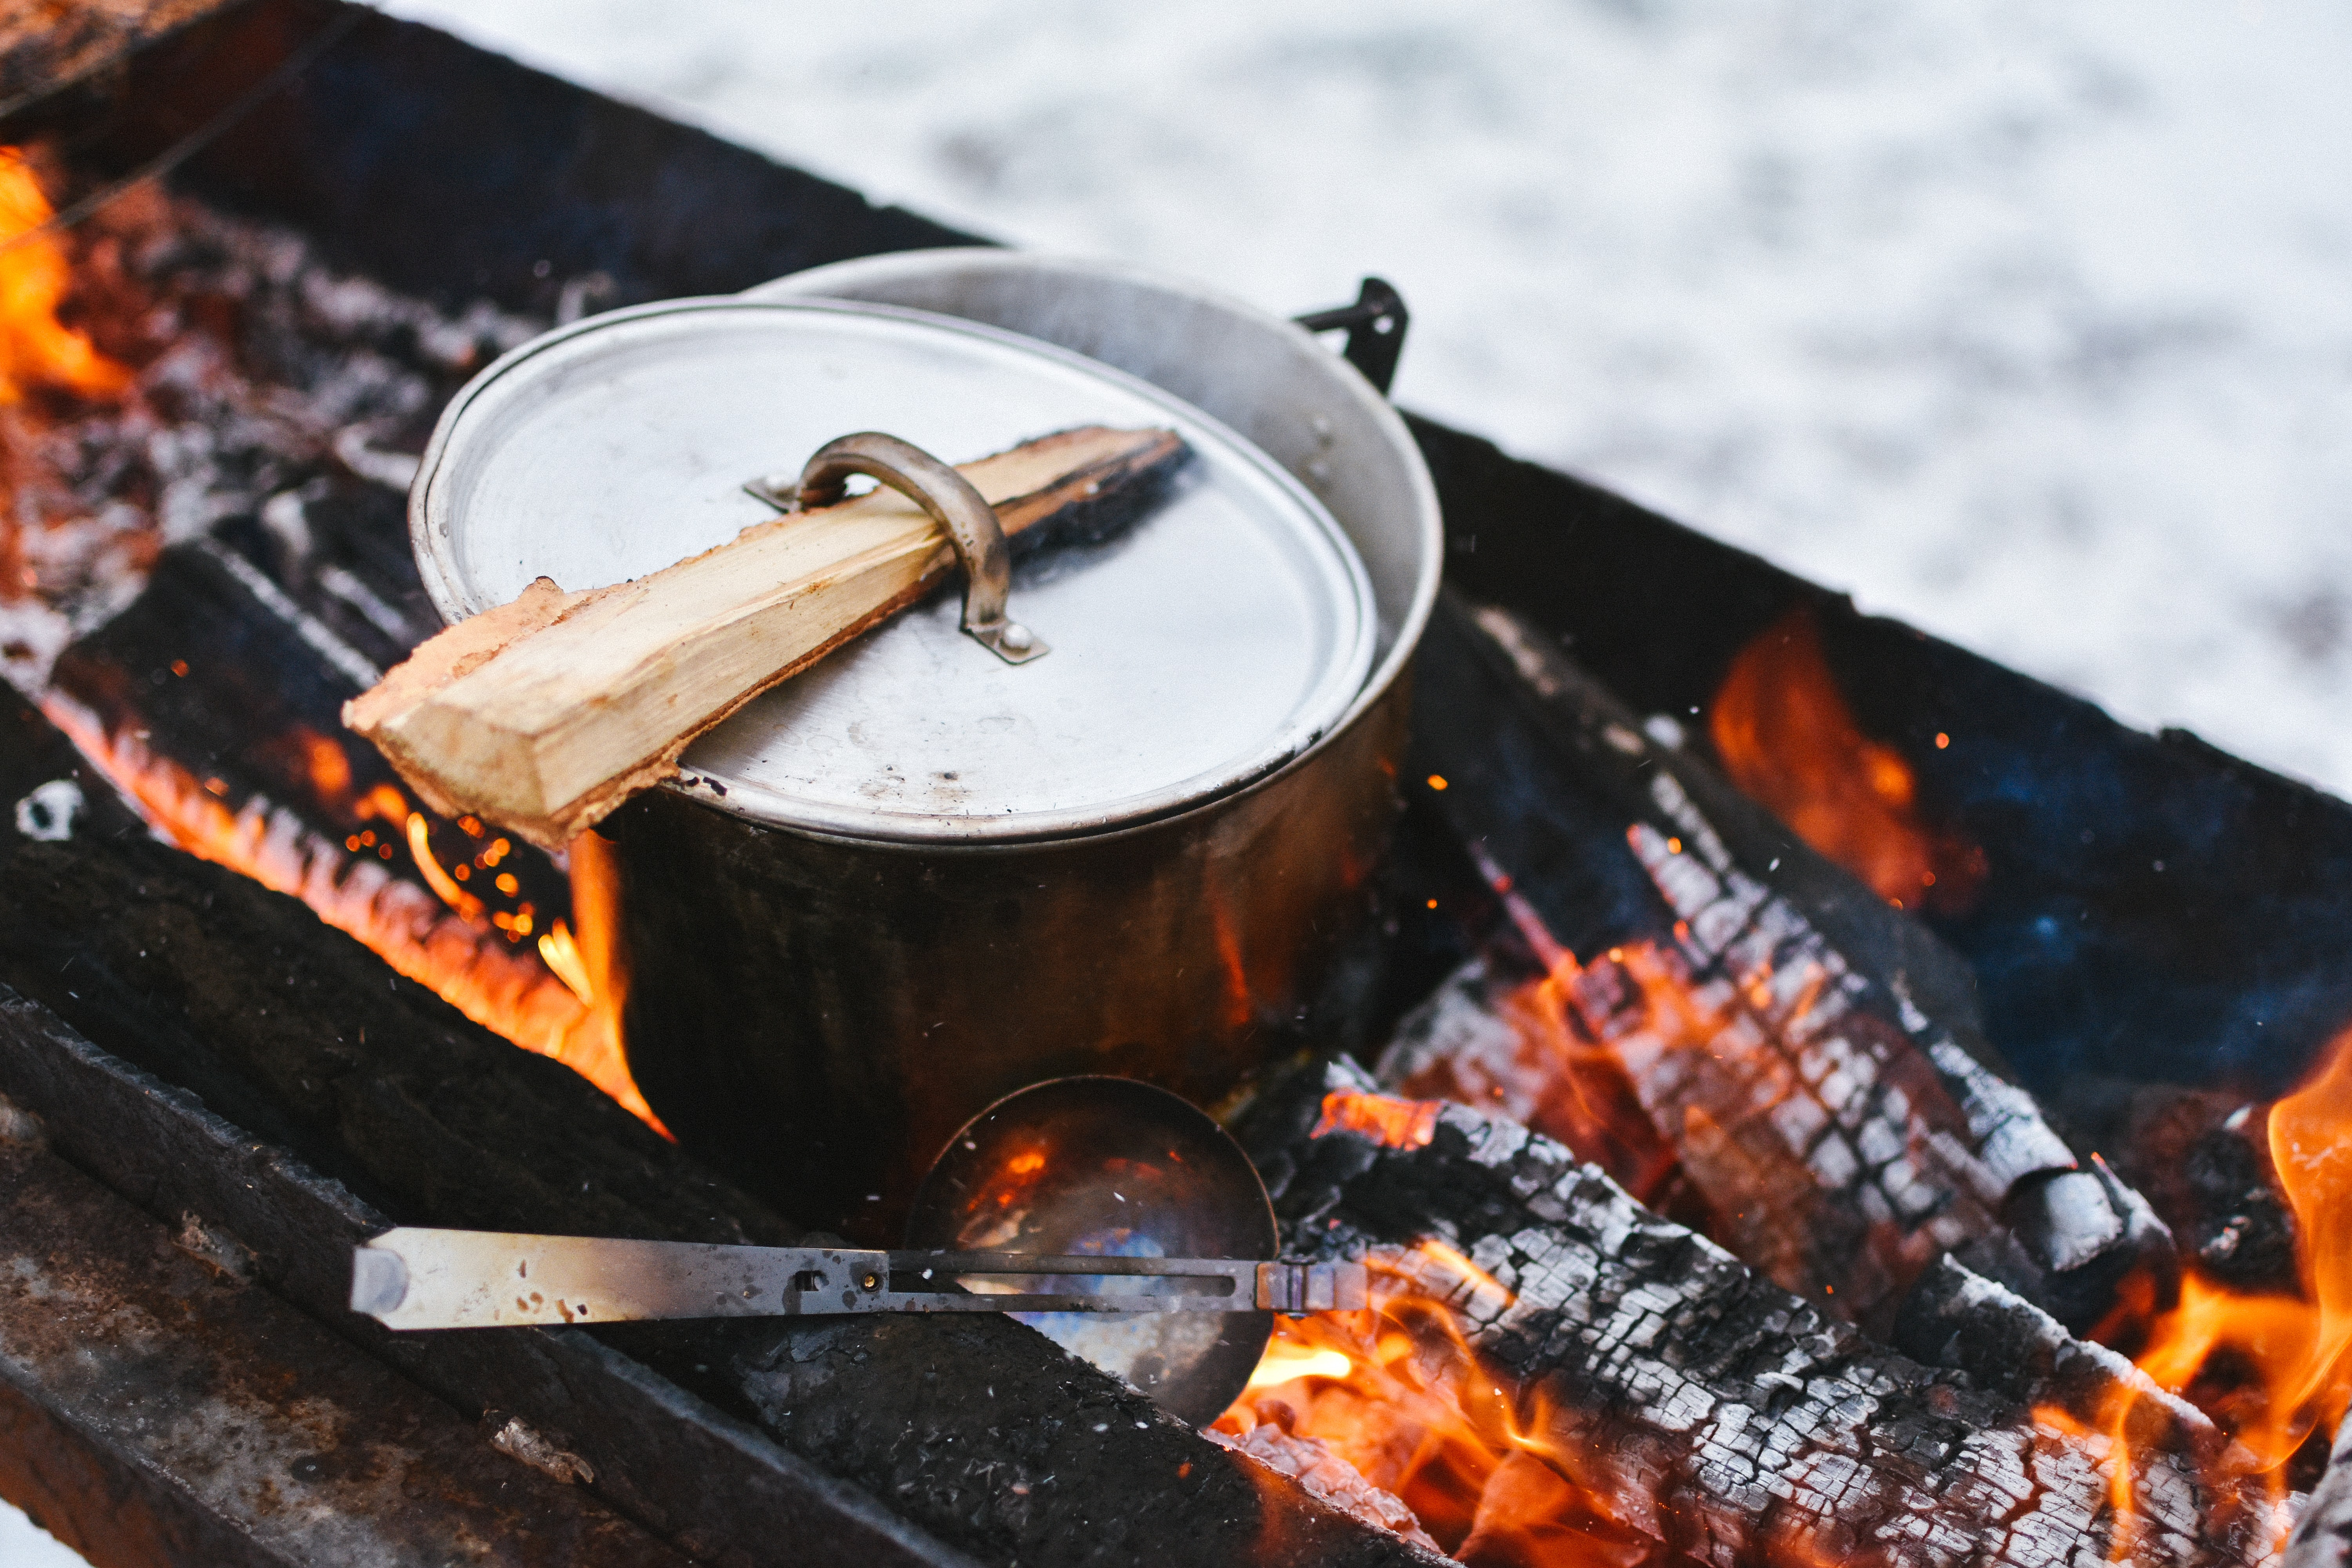 A metal pot sitting in a wood firepit with a log used to pick up the hot lid